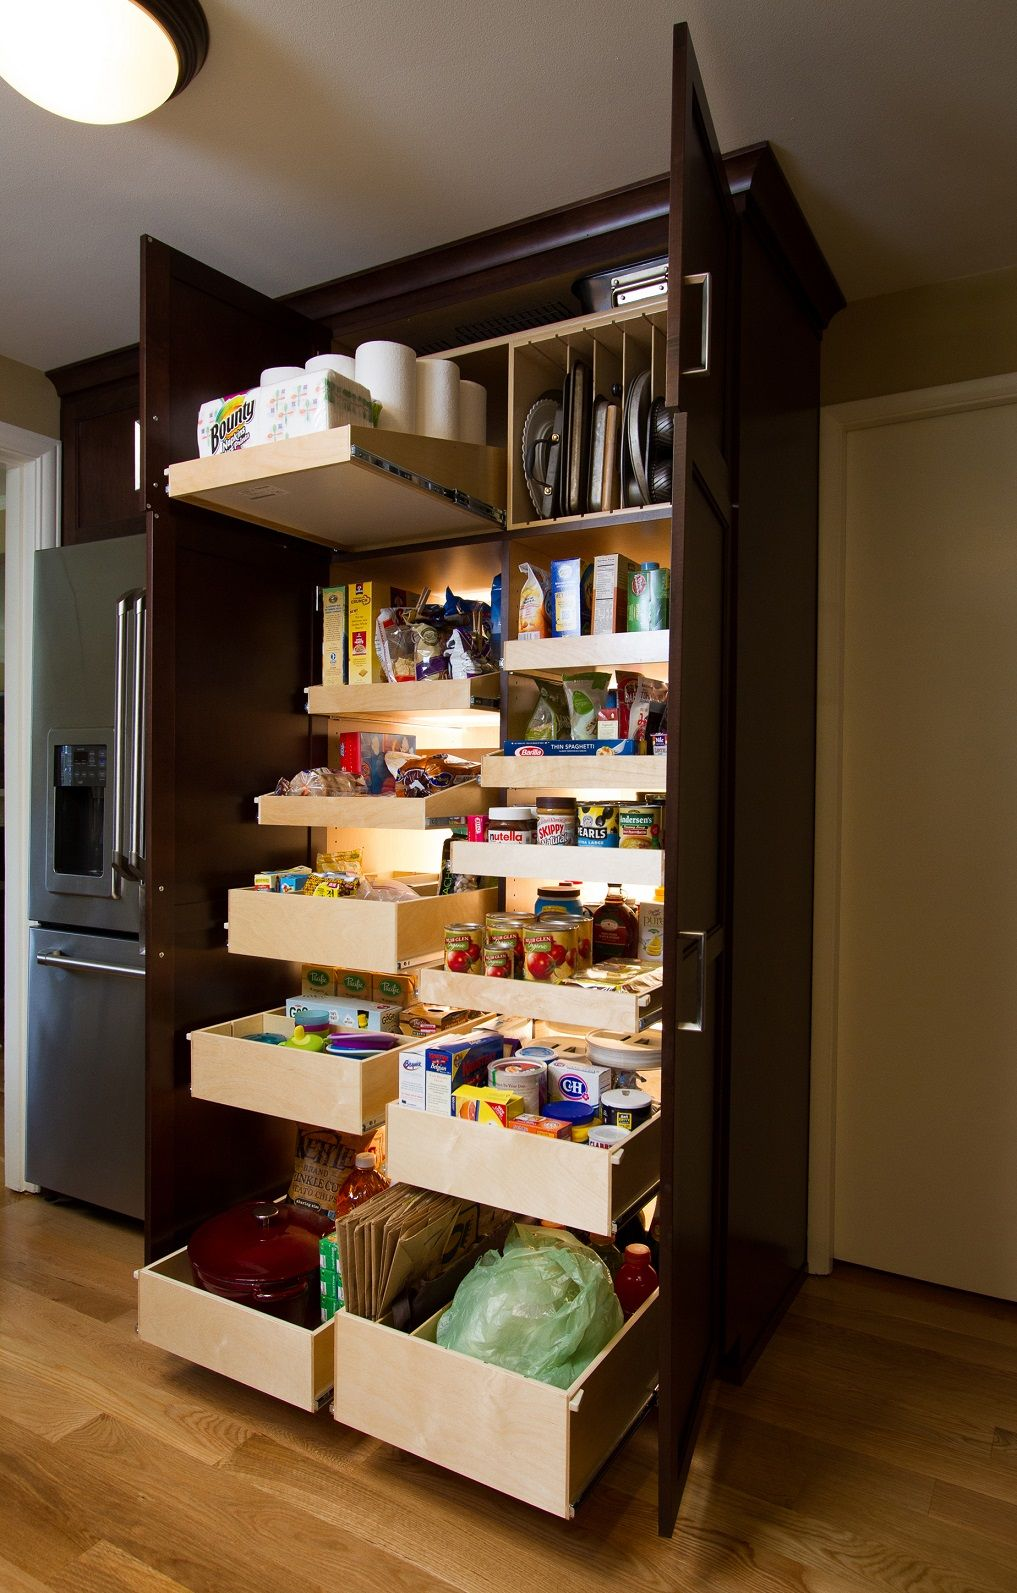 Shelgenie magic organize your house easily with the help of shelf